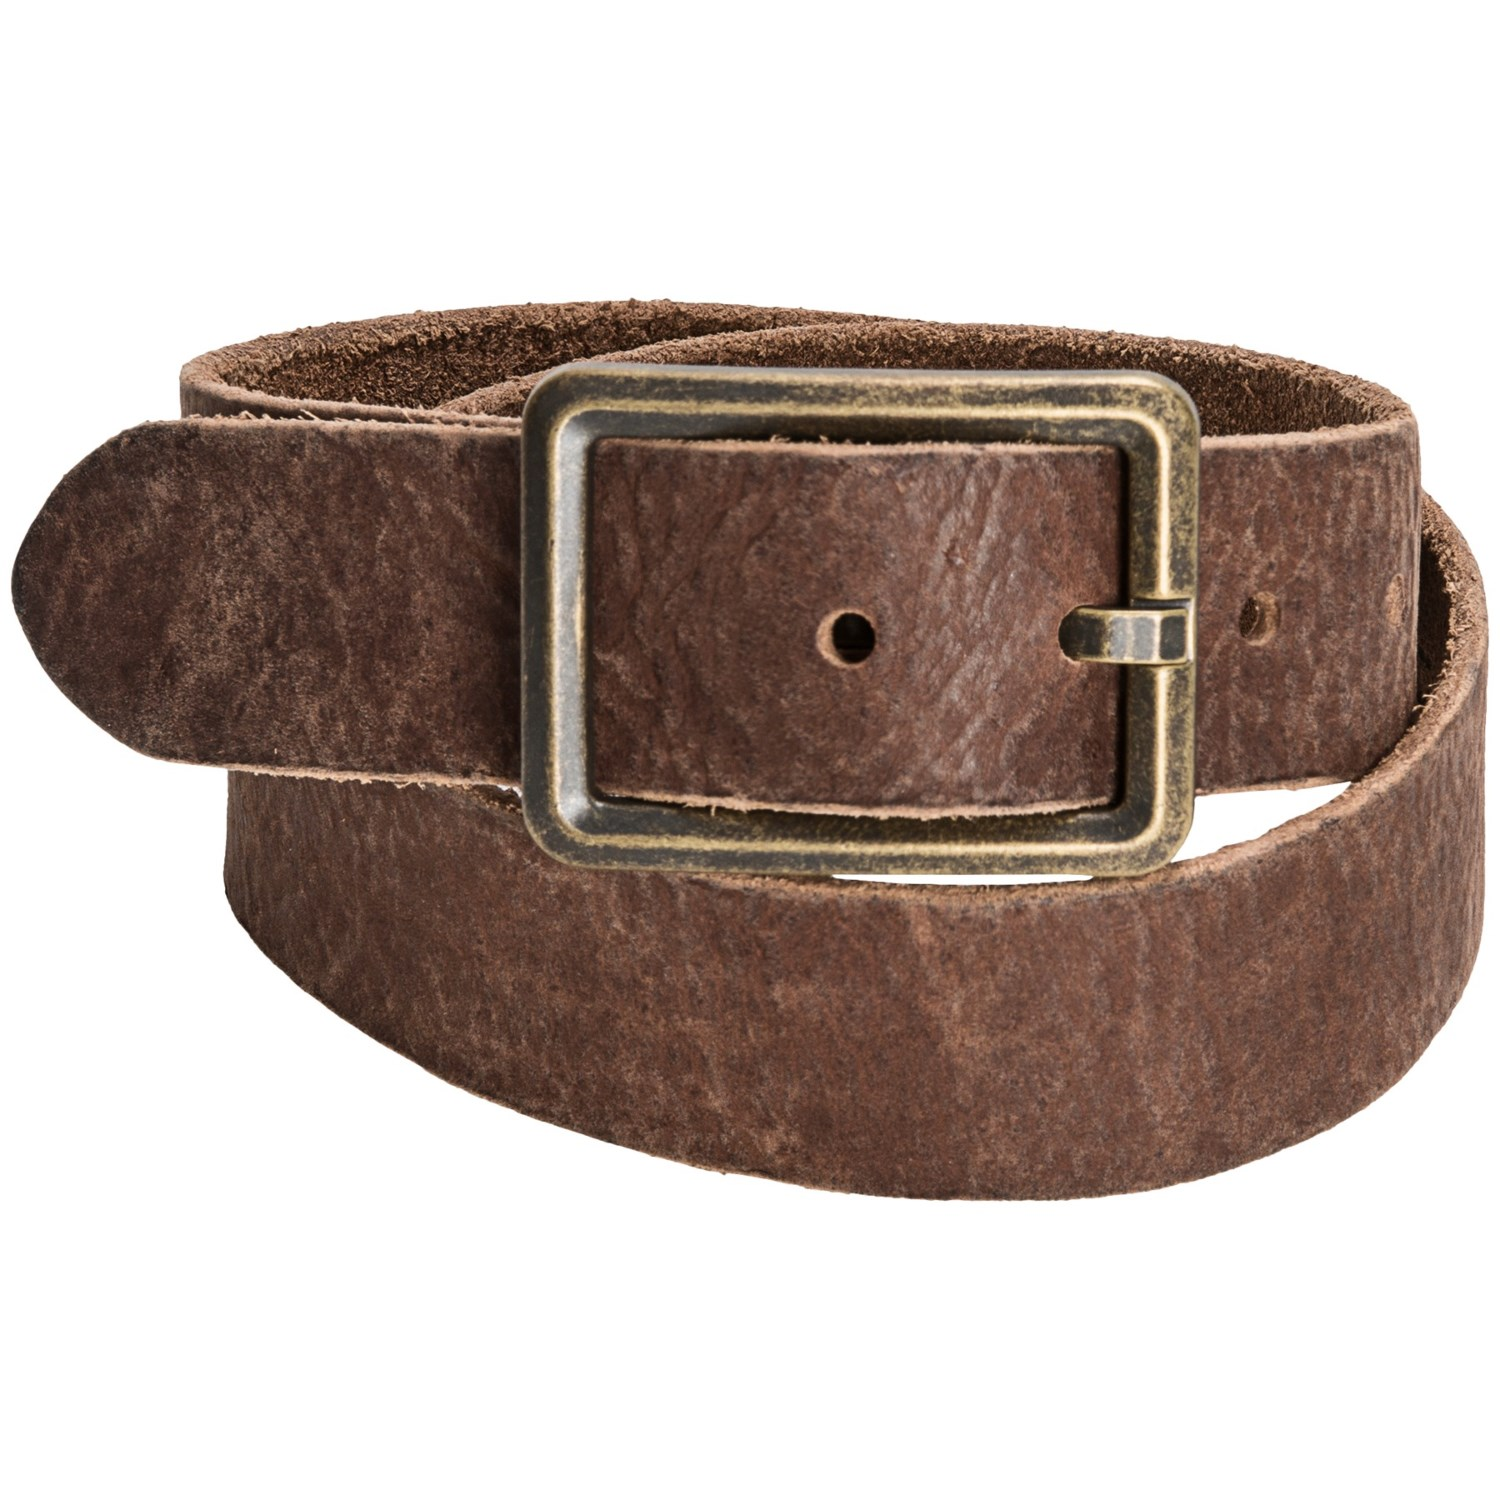 vintage american belts antique leather belt for men